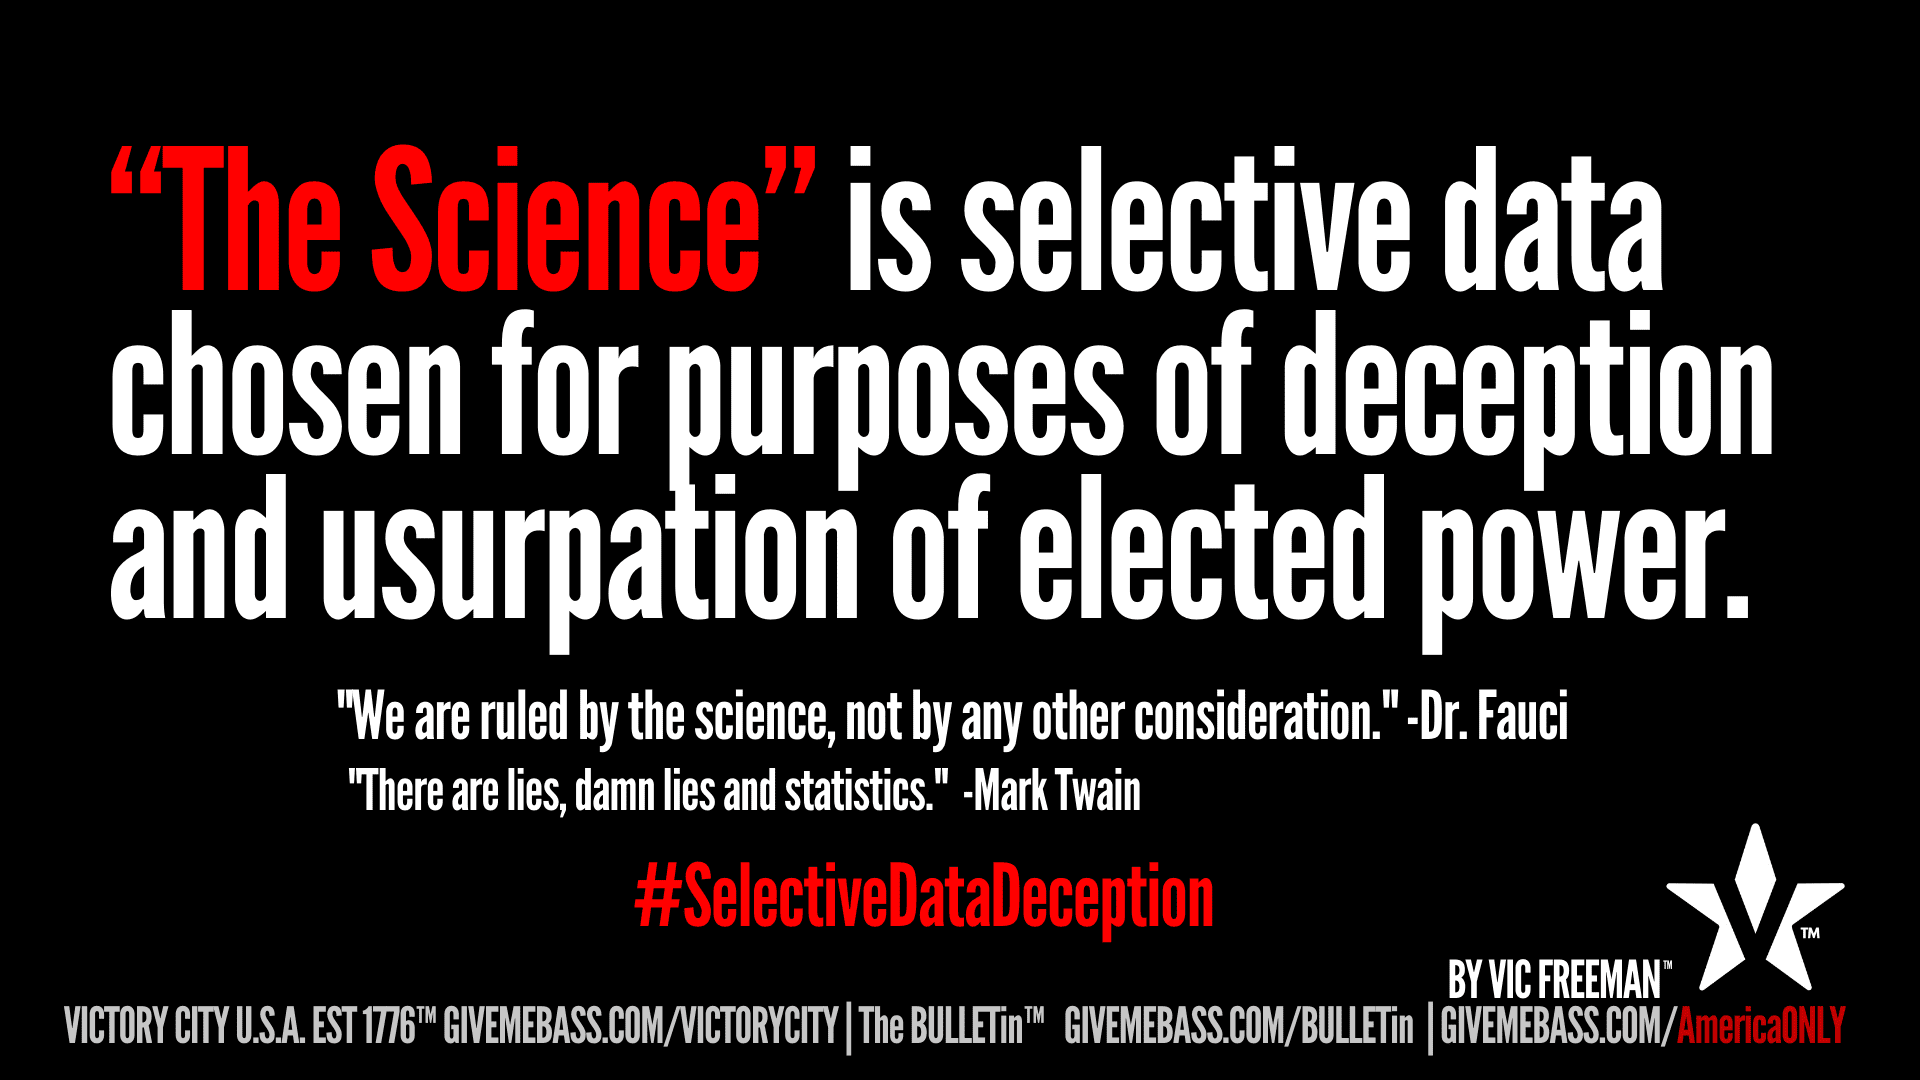 The Science Selective Data Cherry Picked for Usurpation Election